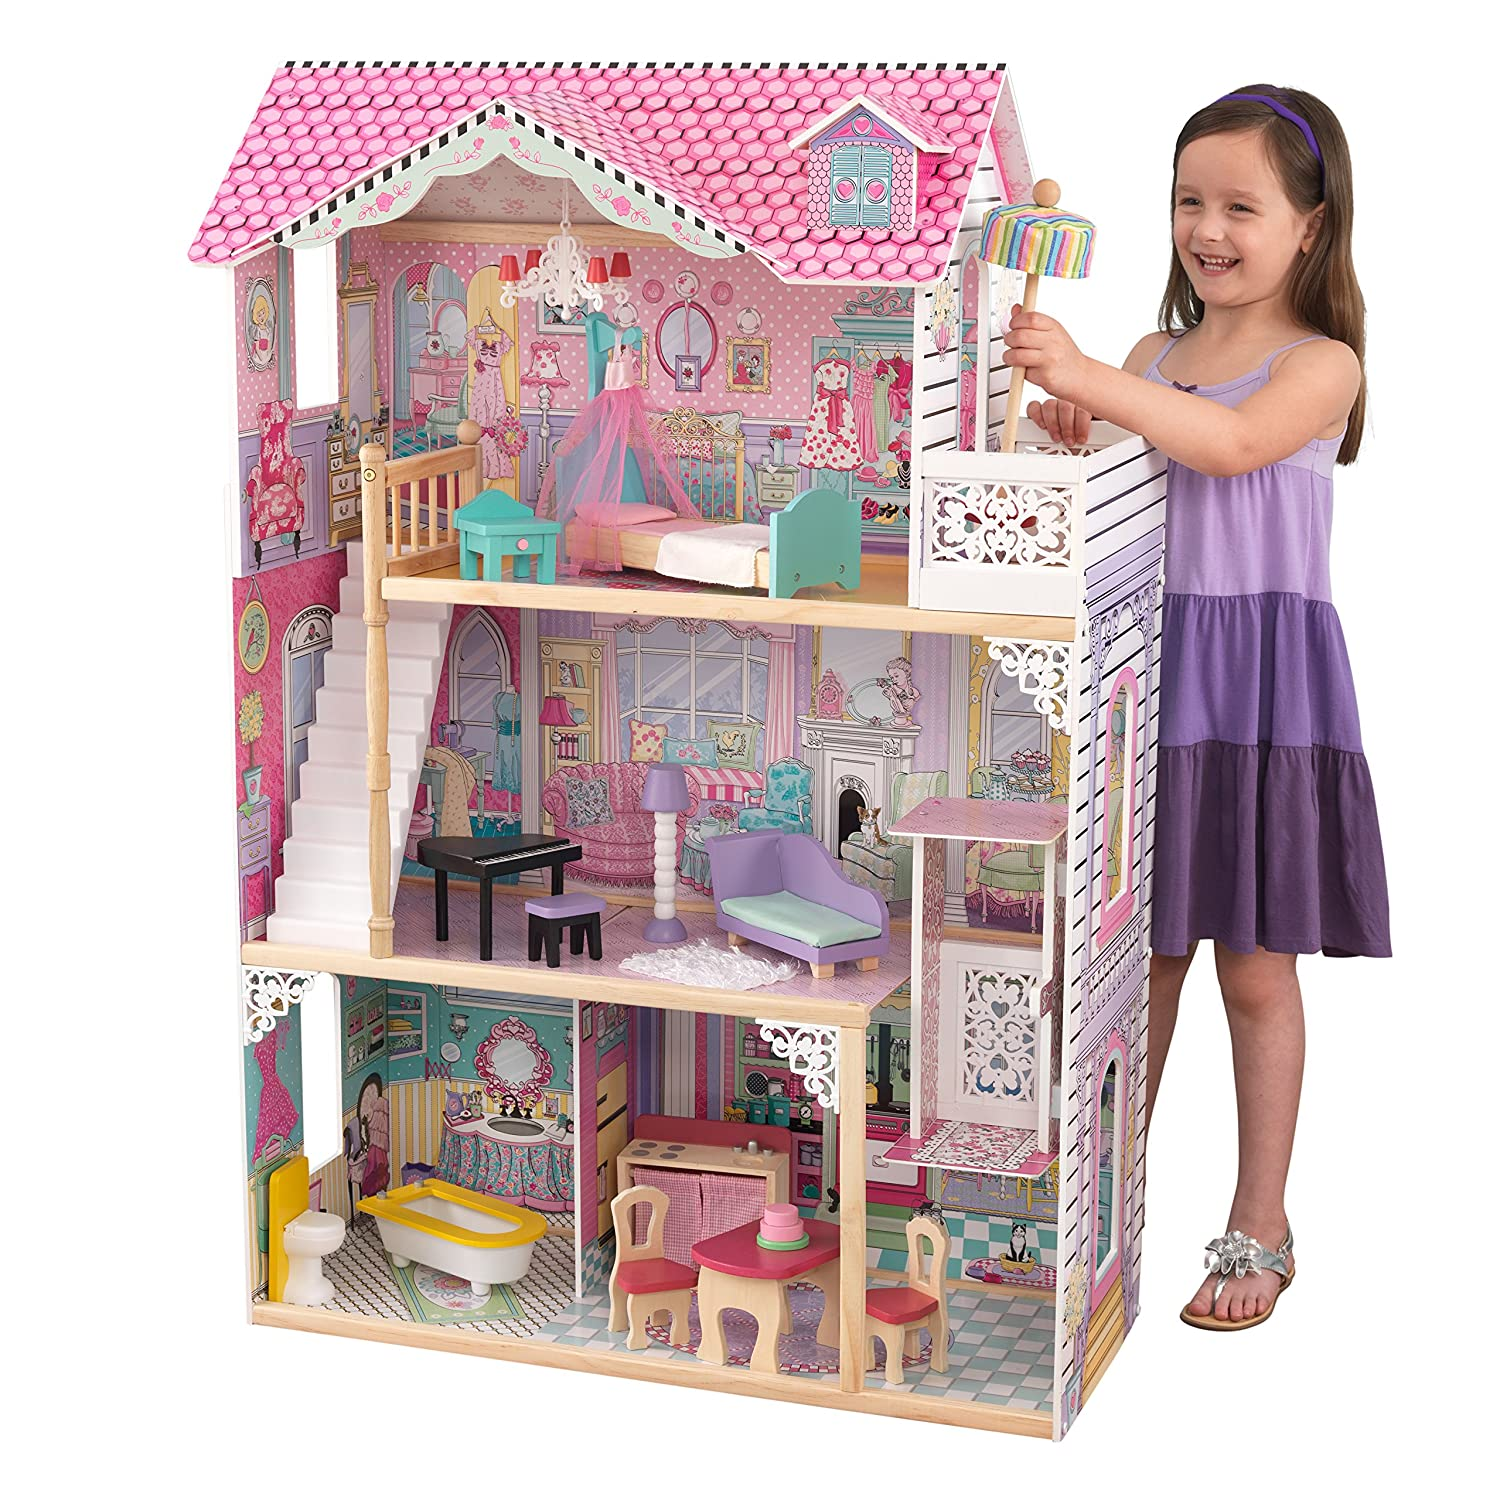 Top 9 Best Dollhouse for Toddlers Reviews in 2019 6